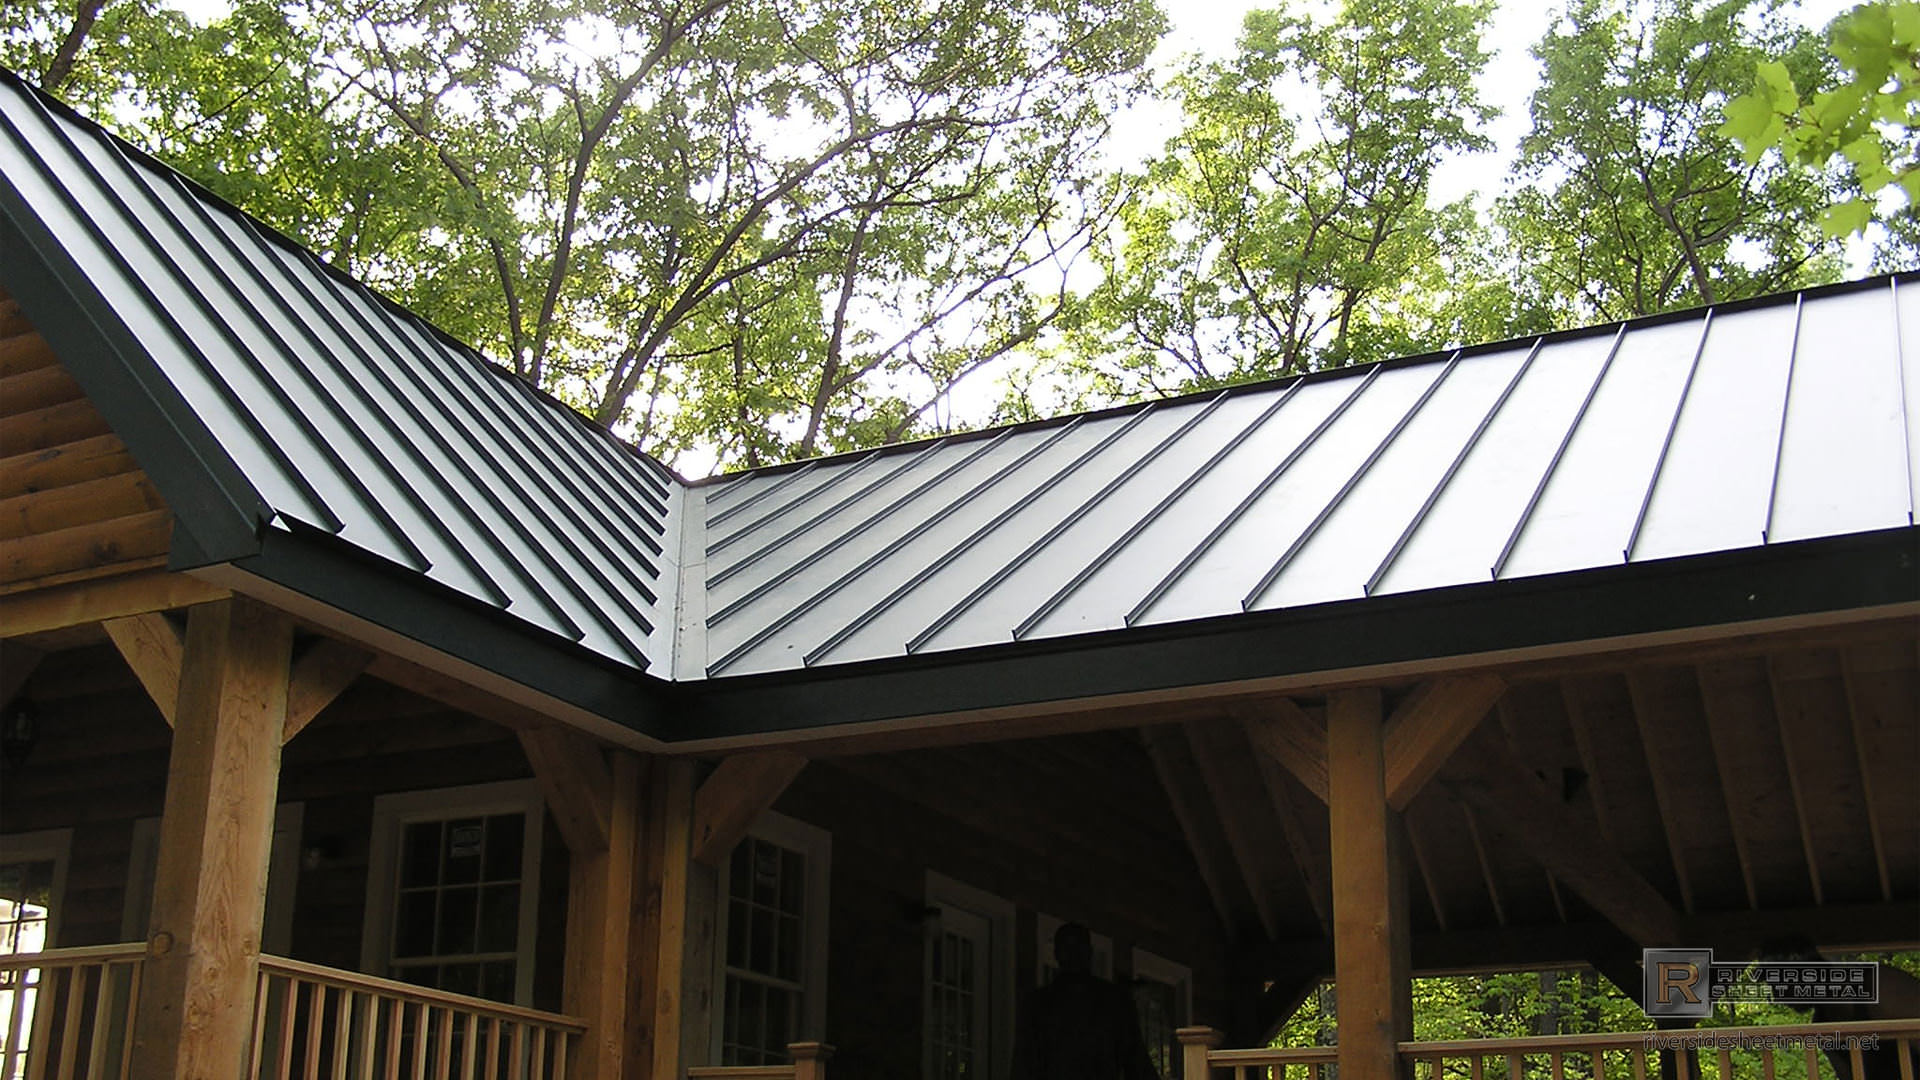 valley detail on a charcoal gray metal roofing